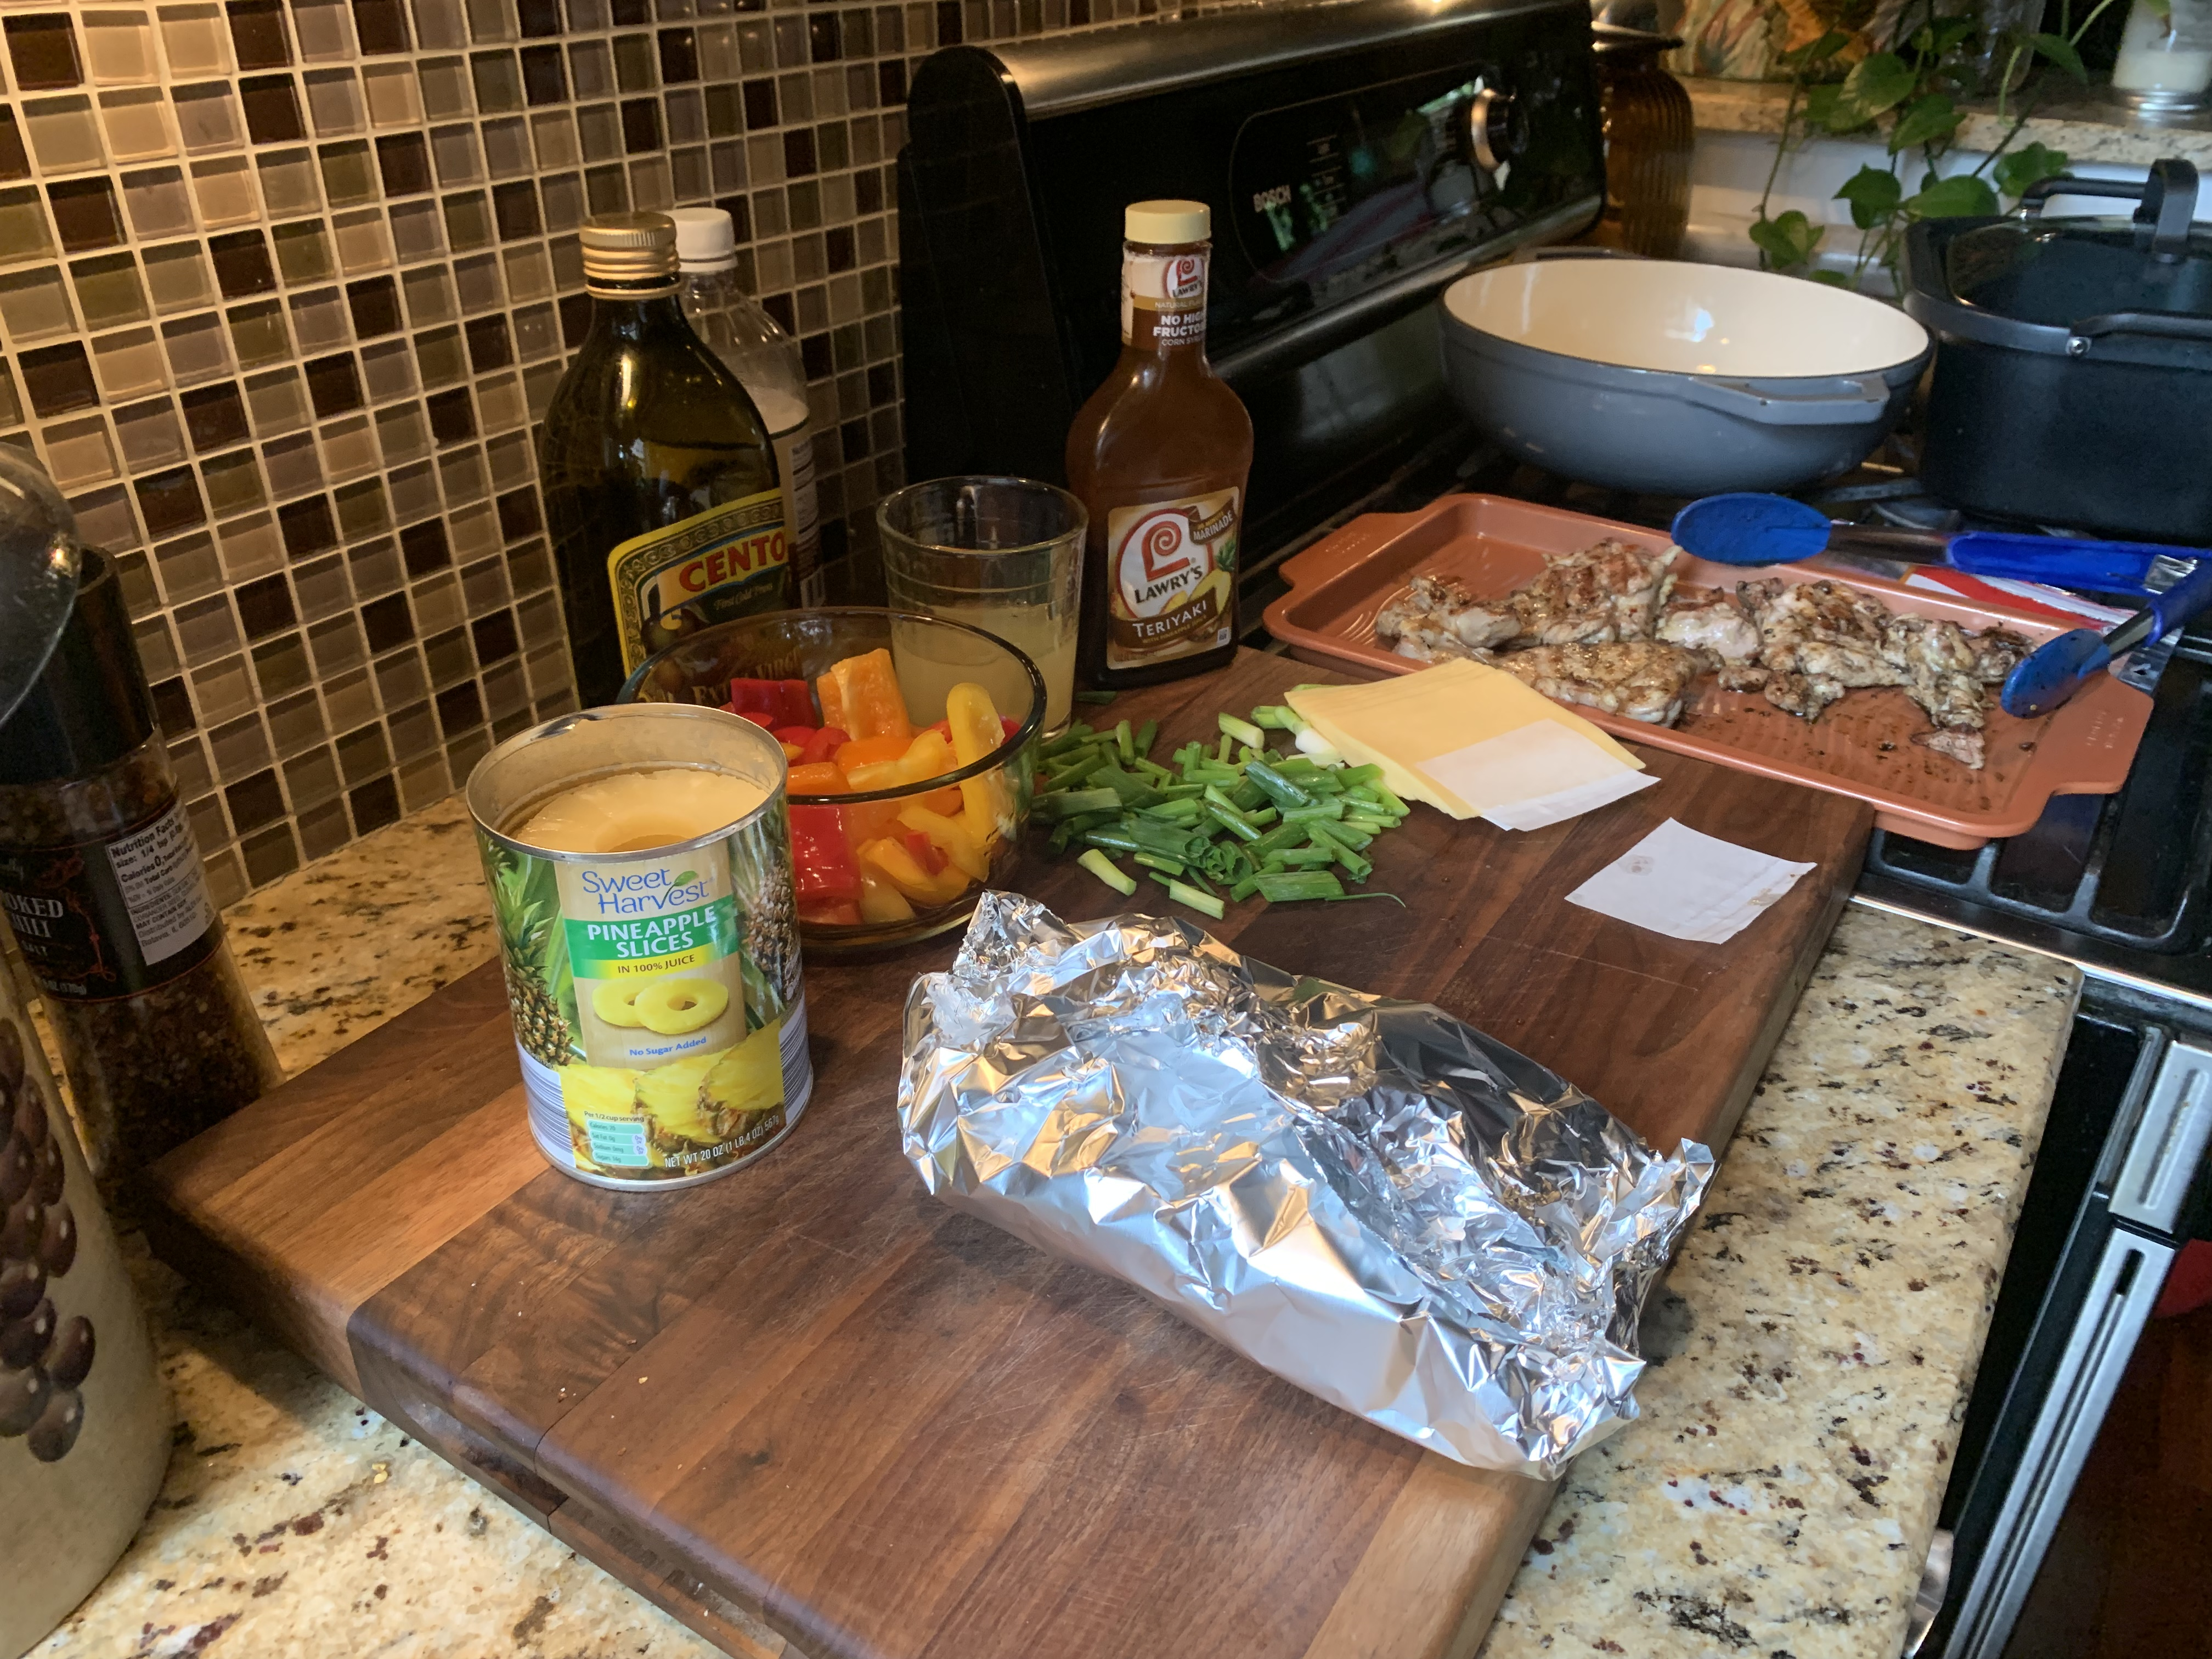 a food prep station is pictured with peppers, pineapple, chicken, cheese and foil